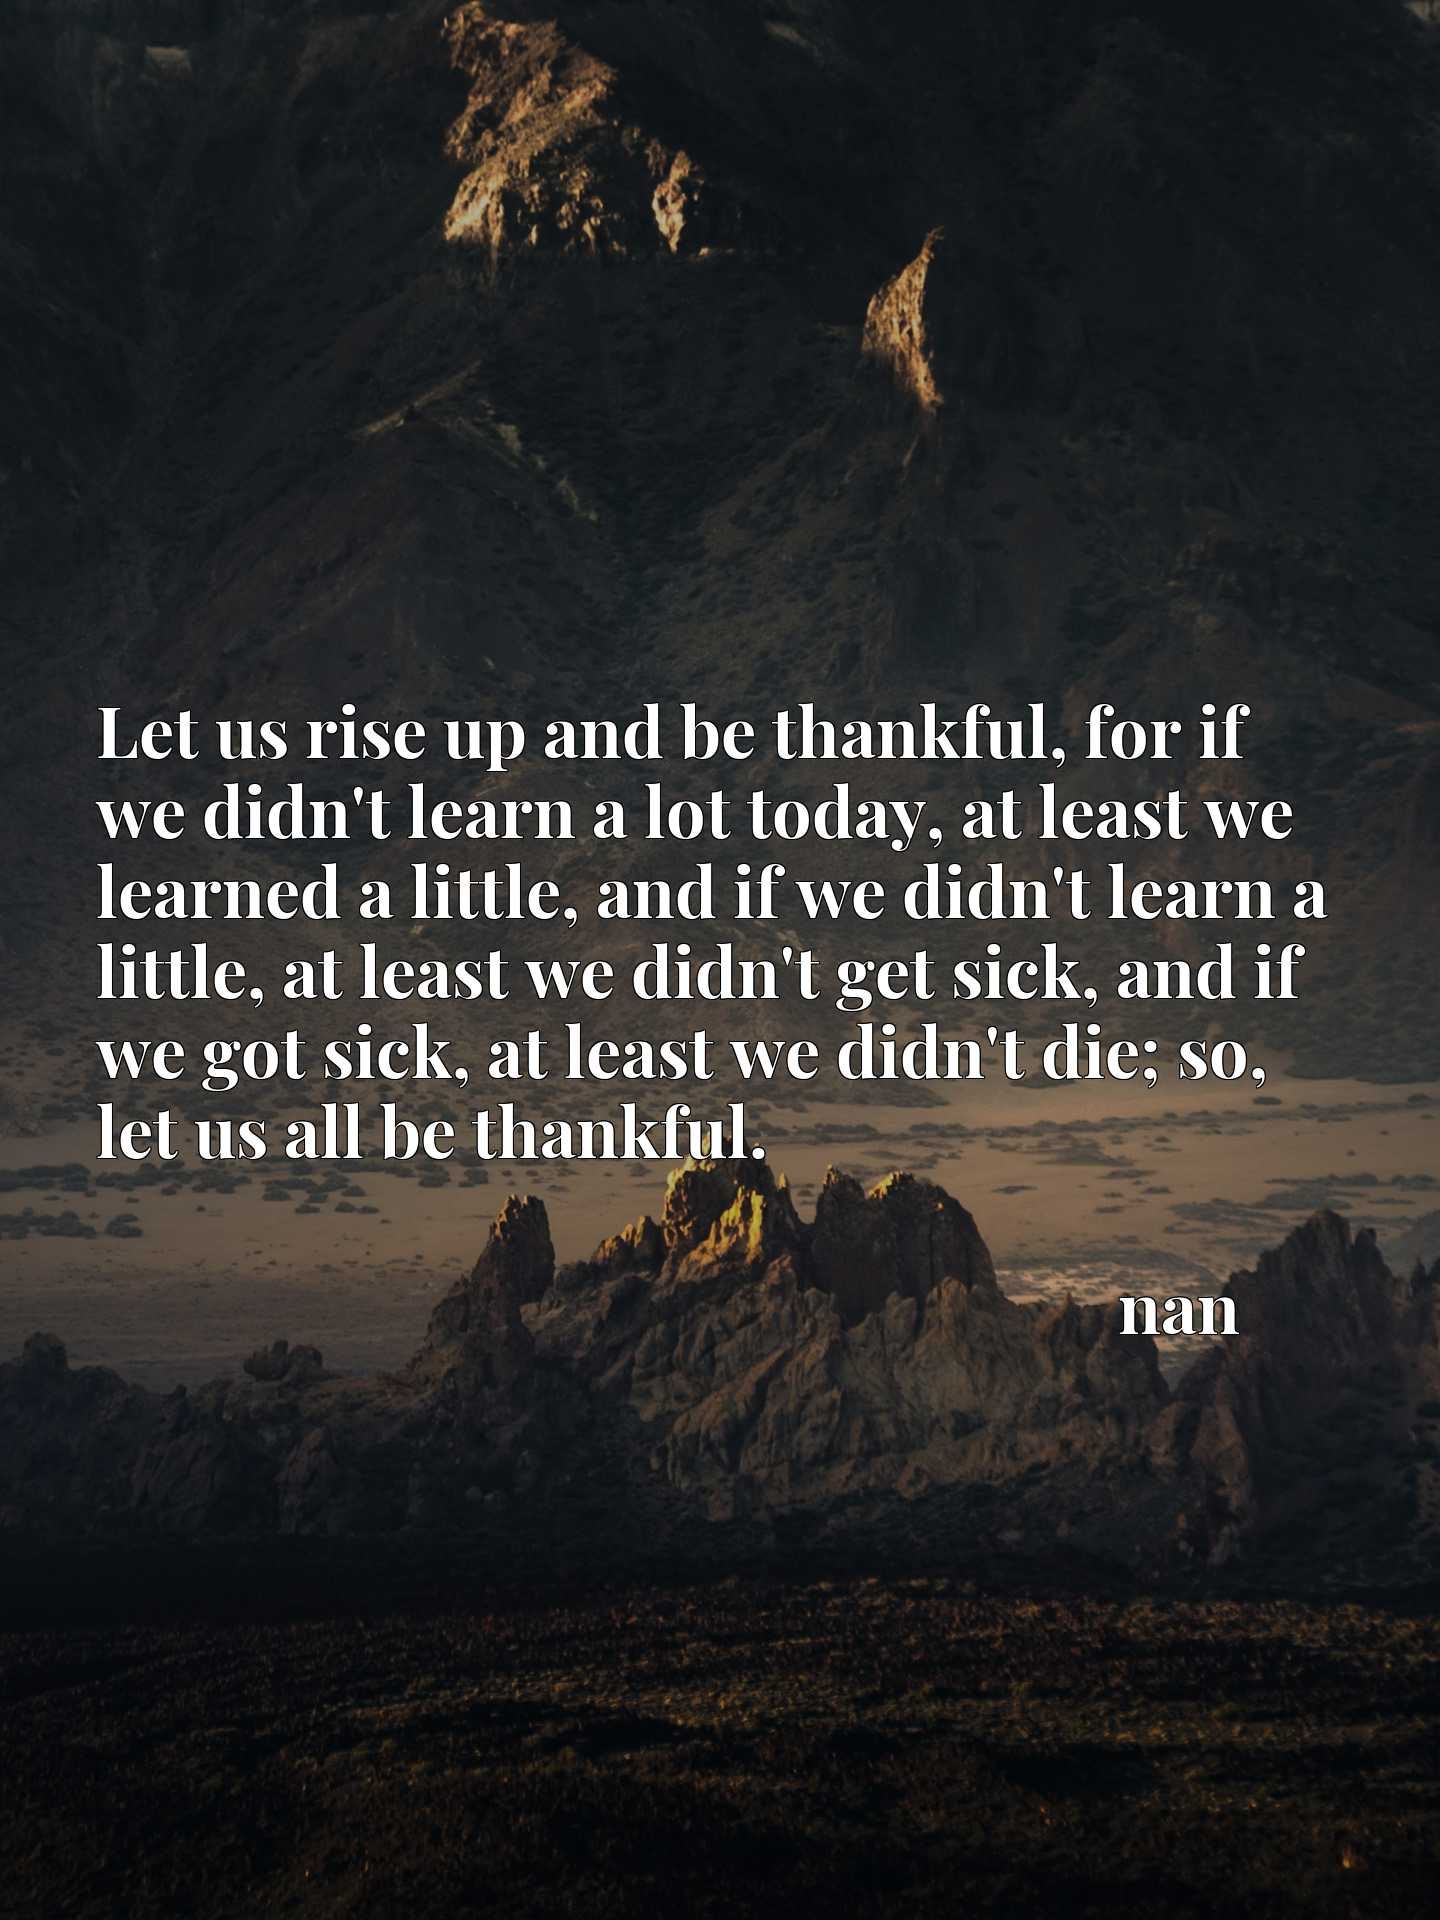 Let us rise up and be thankful, for if we didn't learn a lot today, at least we learned a little, and if we didn't learn a little, at least we didn't get sick, and if we got sick, at least we didn't die; so, let us all be thankful.